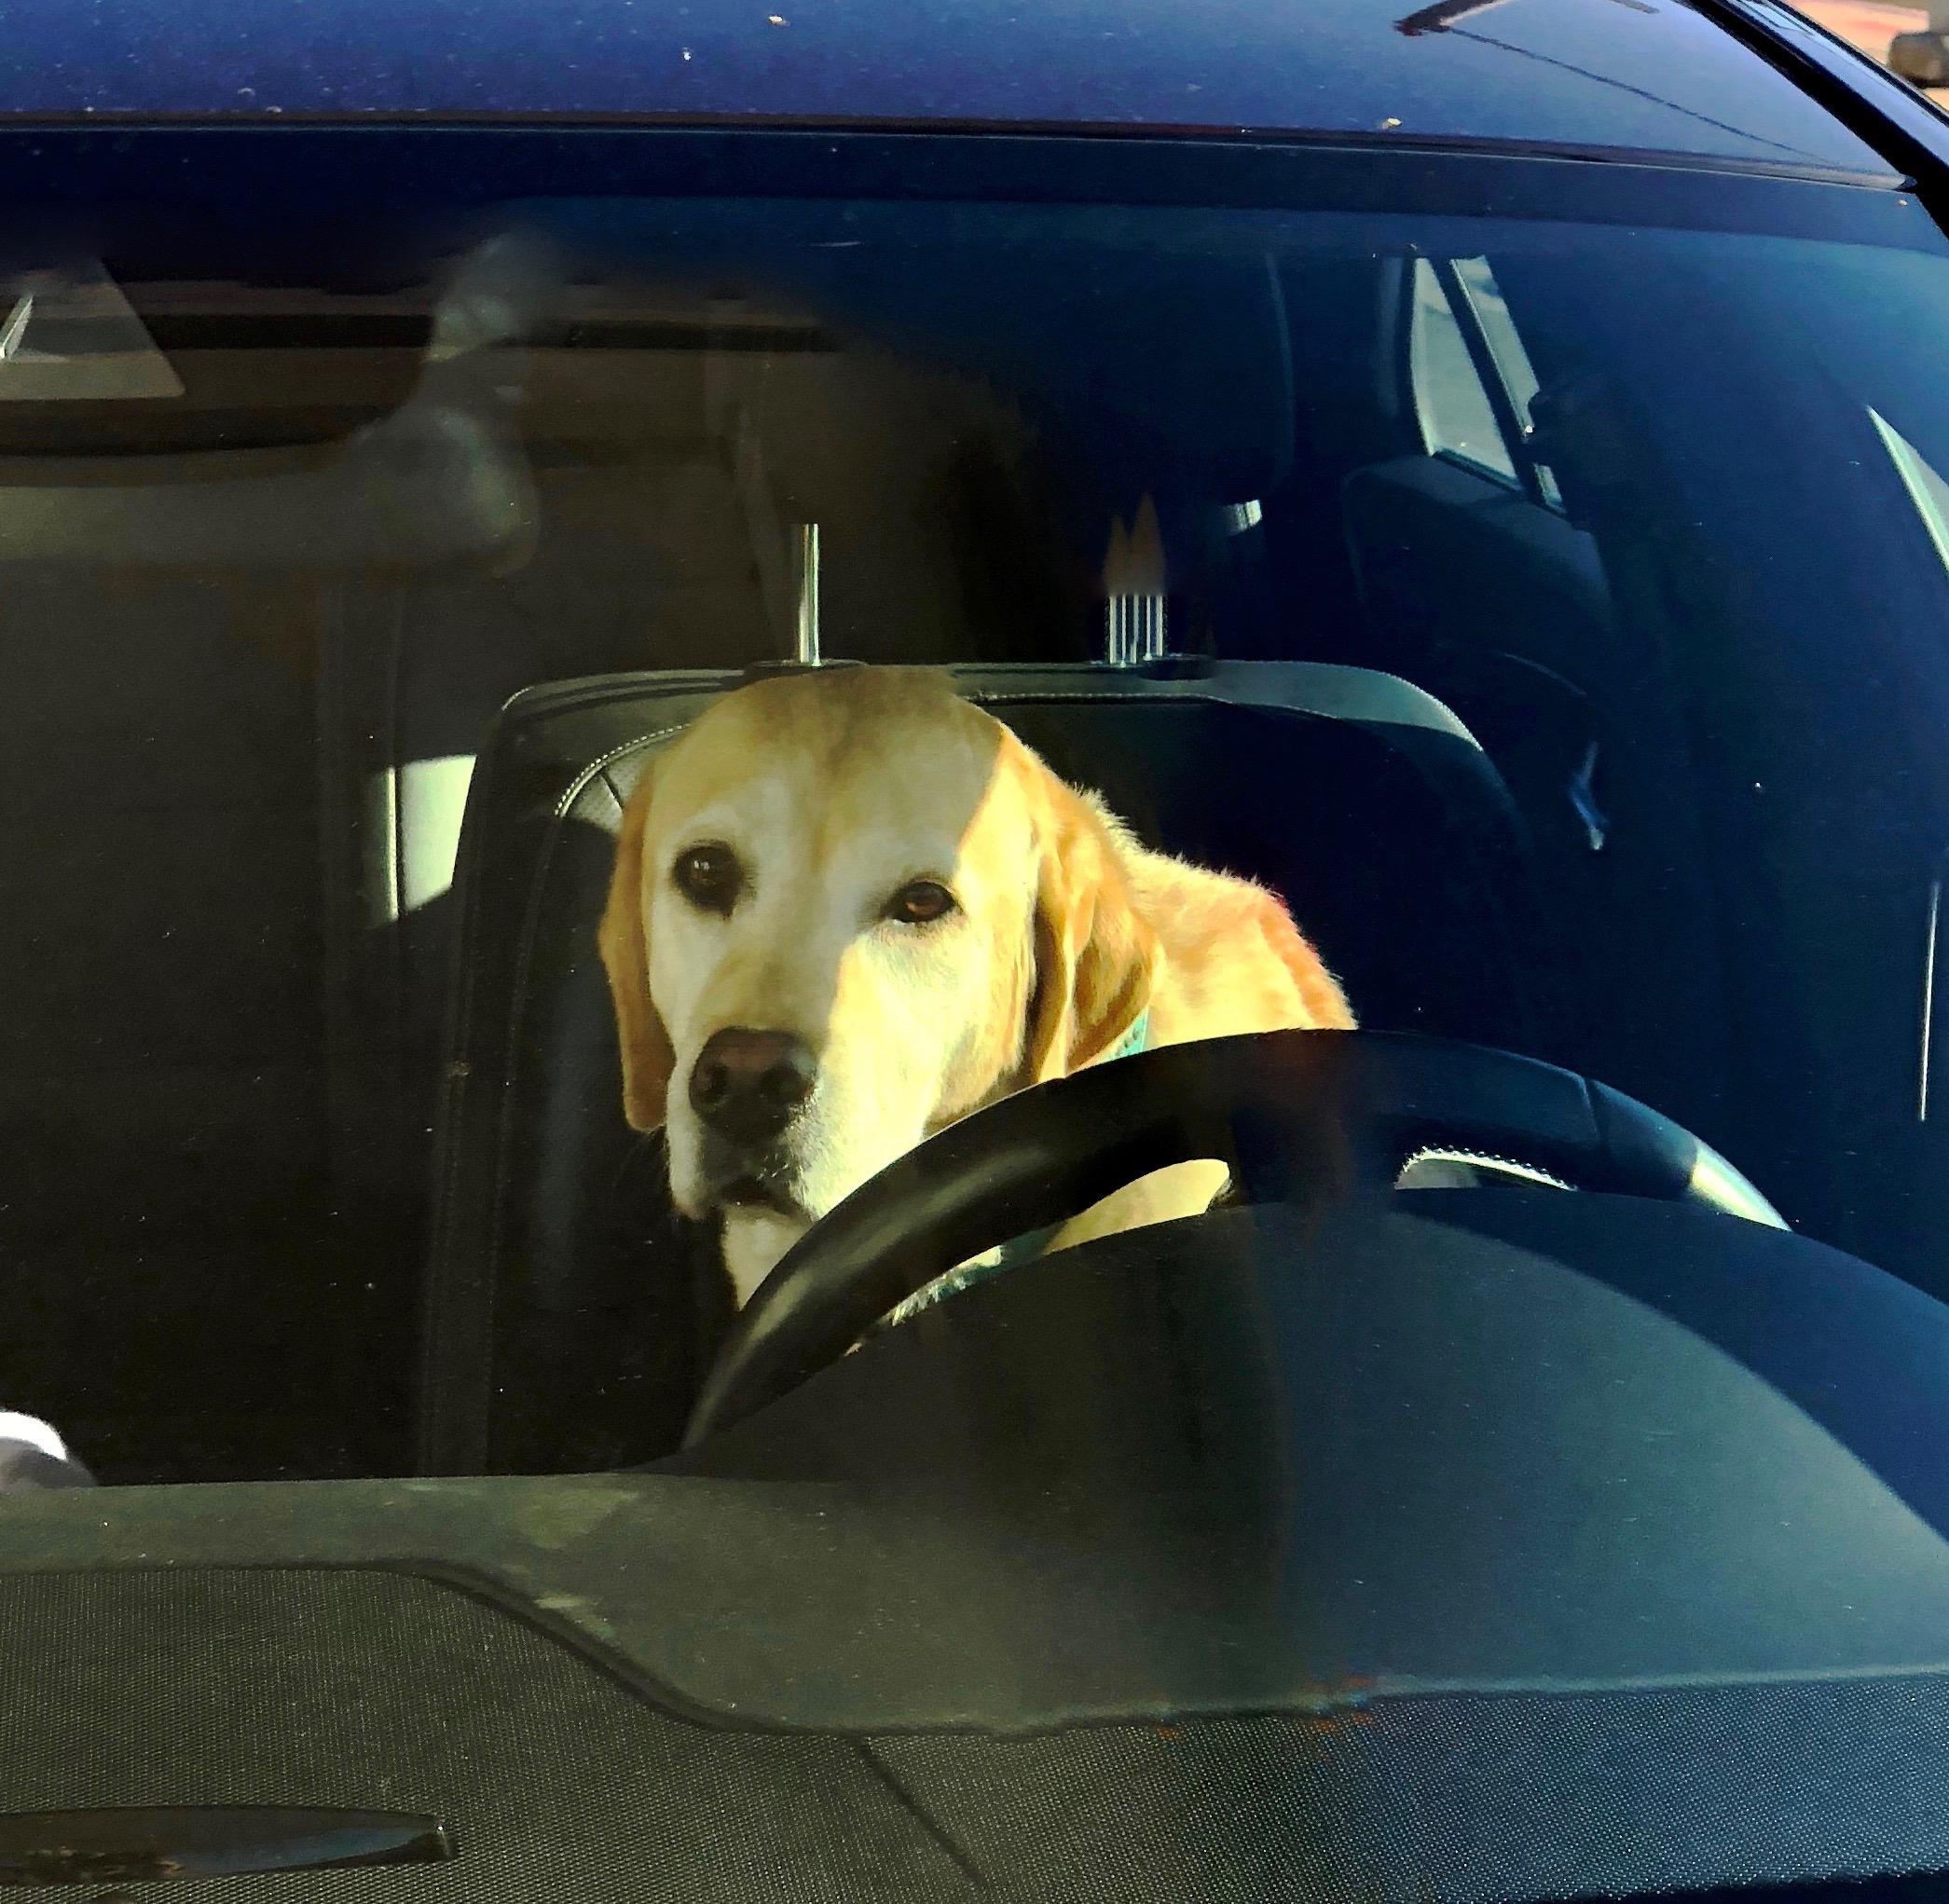 Car With Yellow Lab In The Driver's Seat